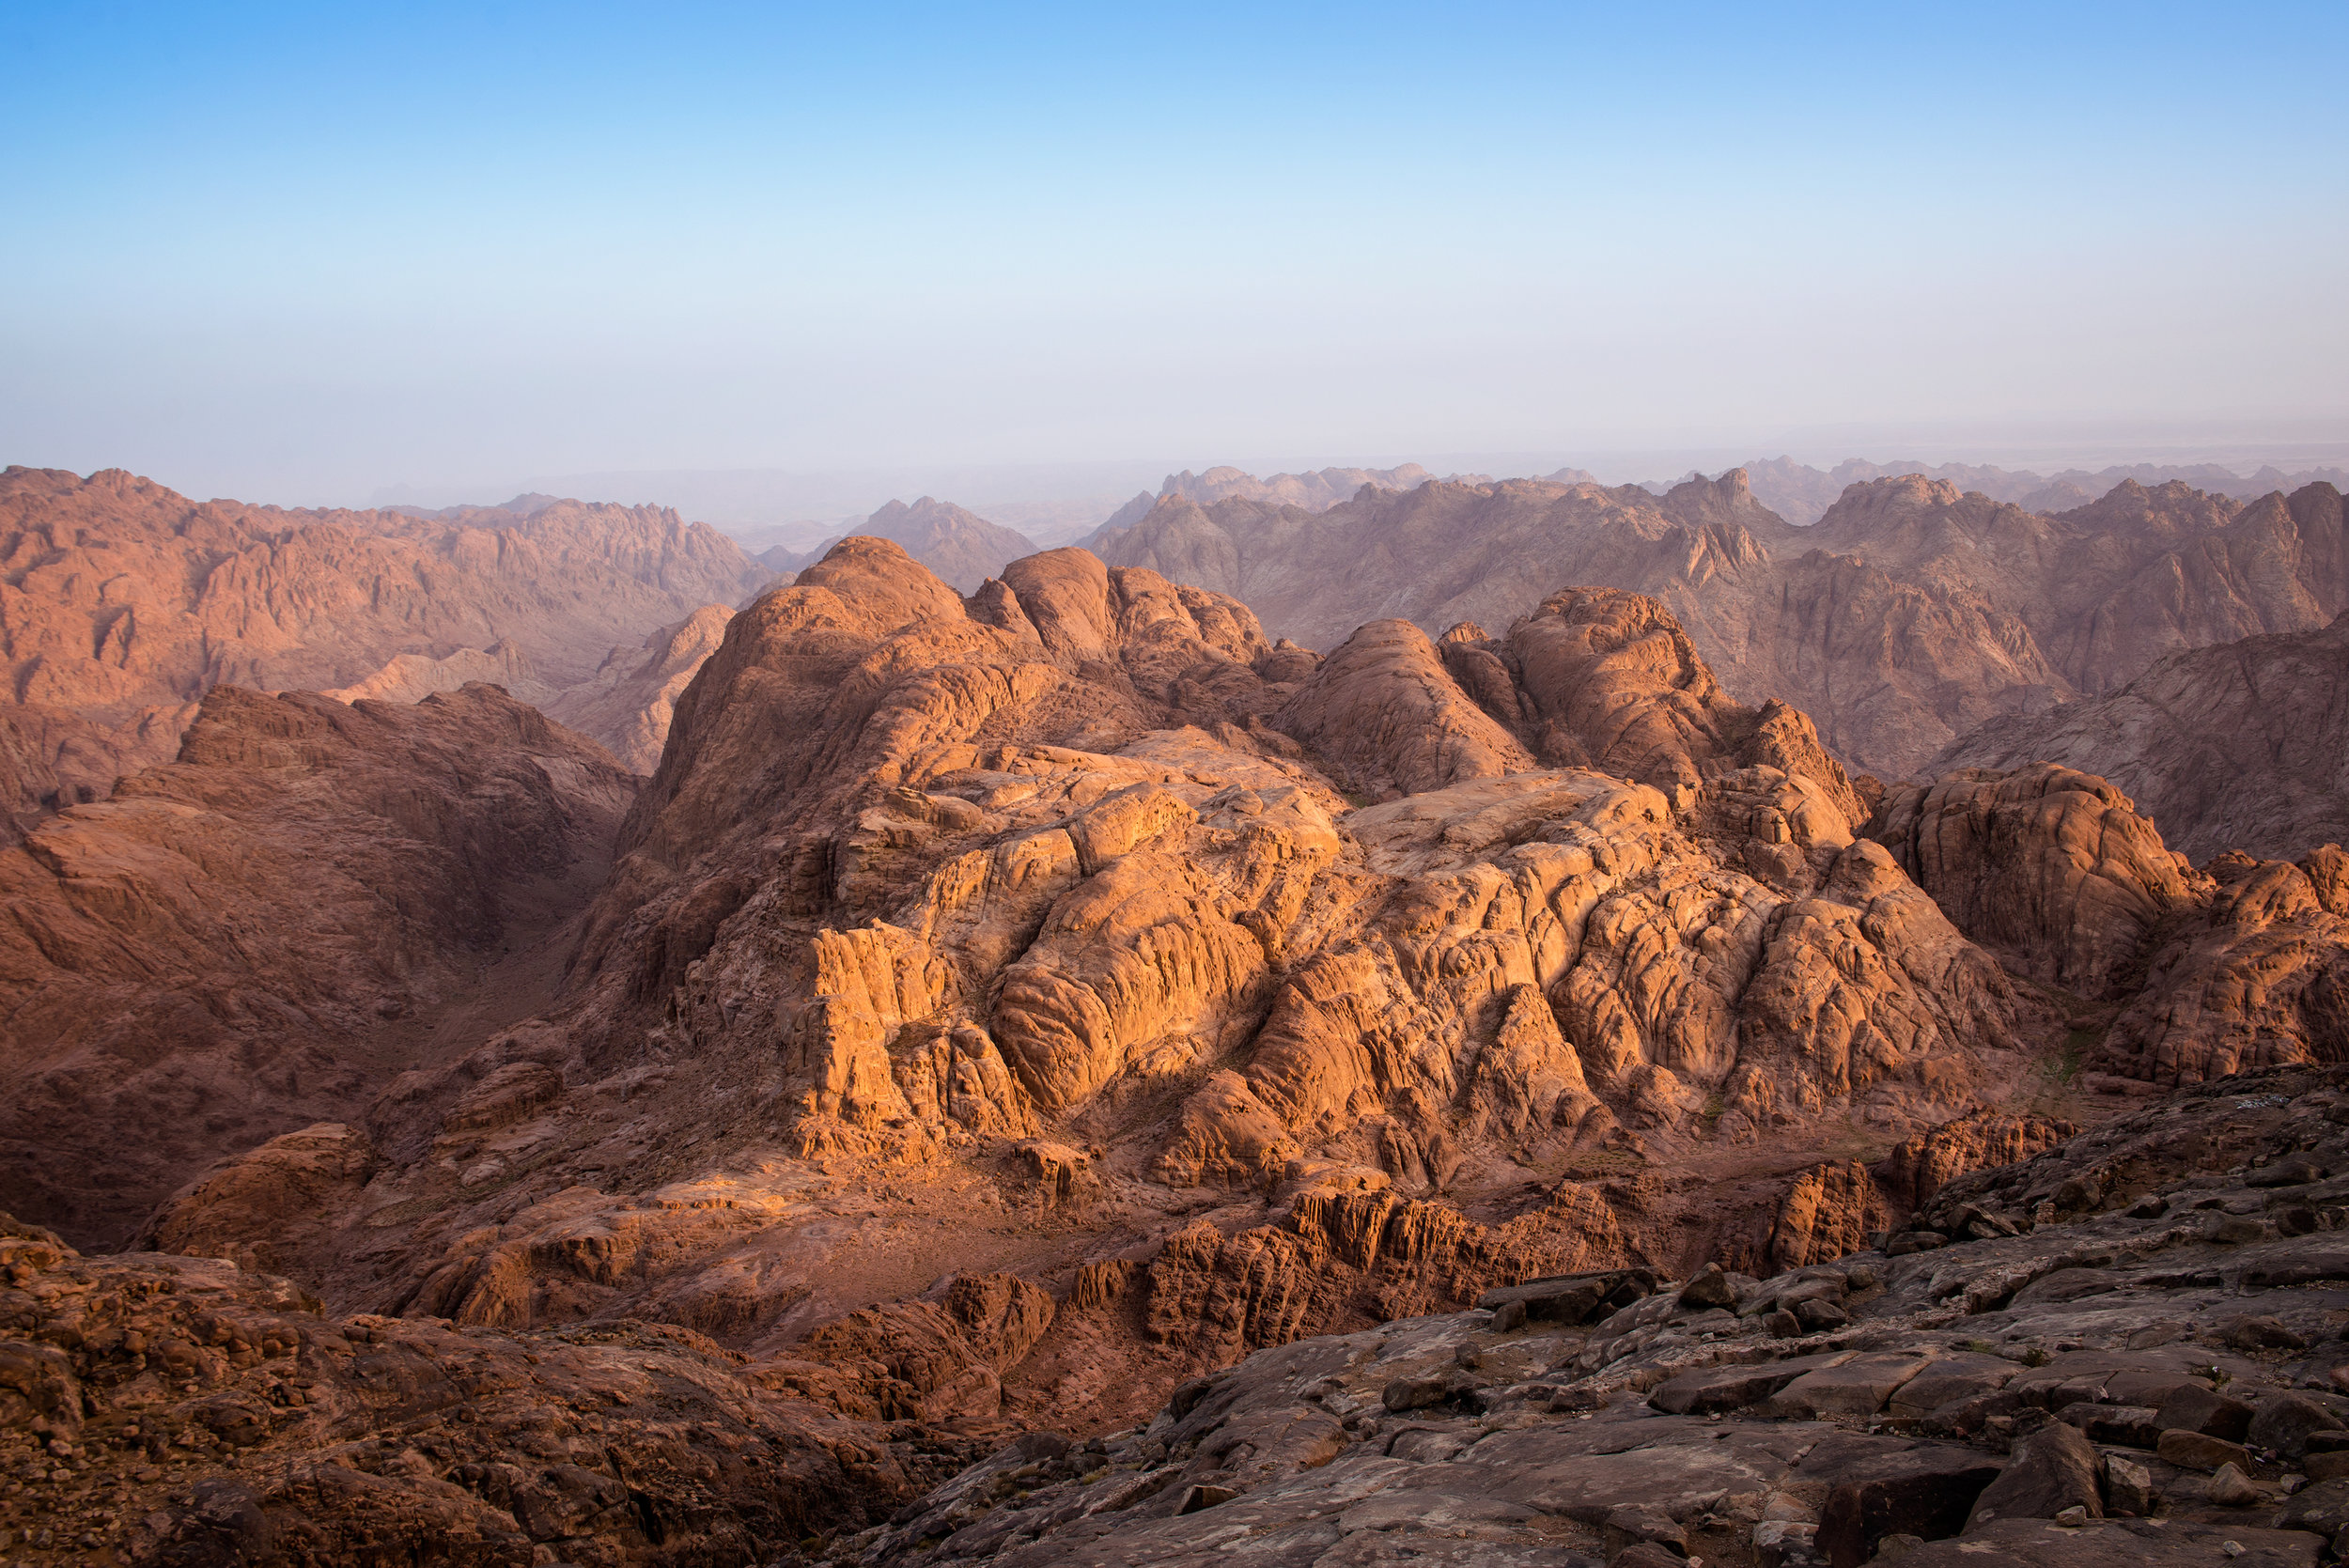 Figure 7 - Mount Sinai, Egypt